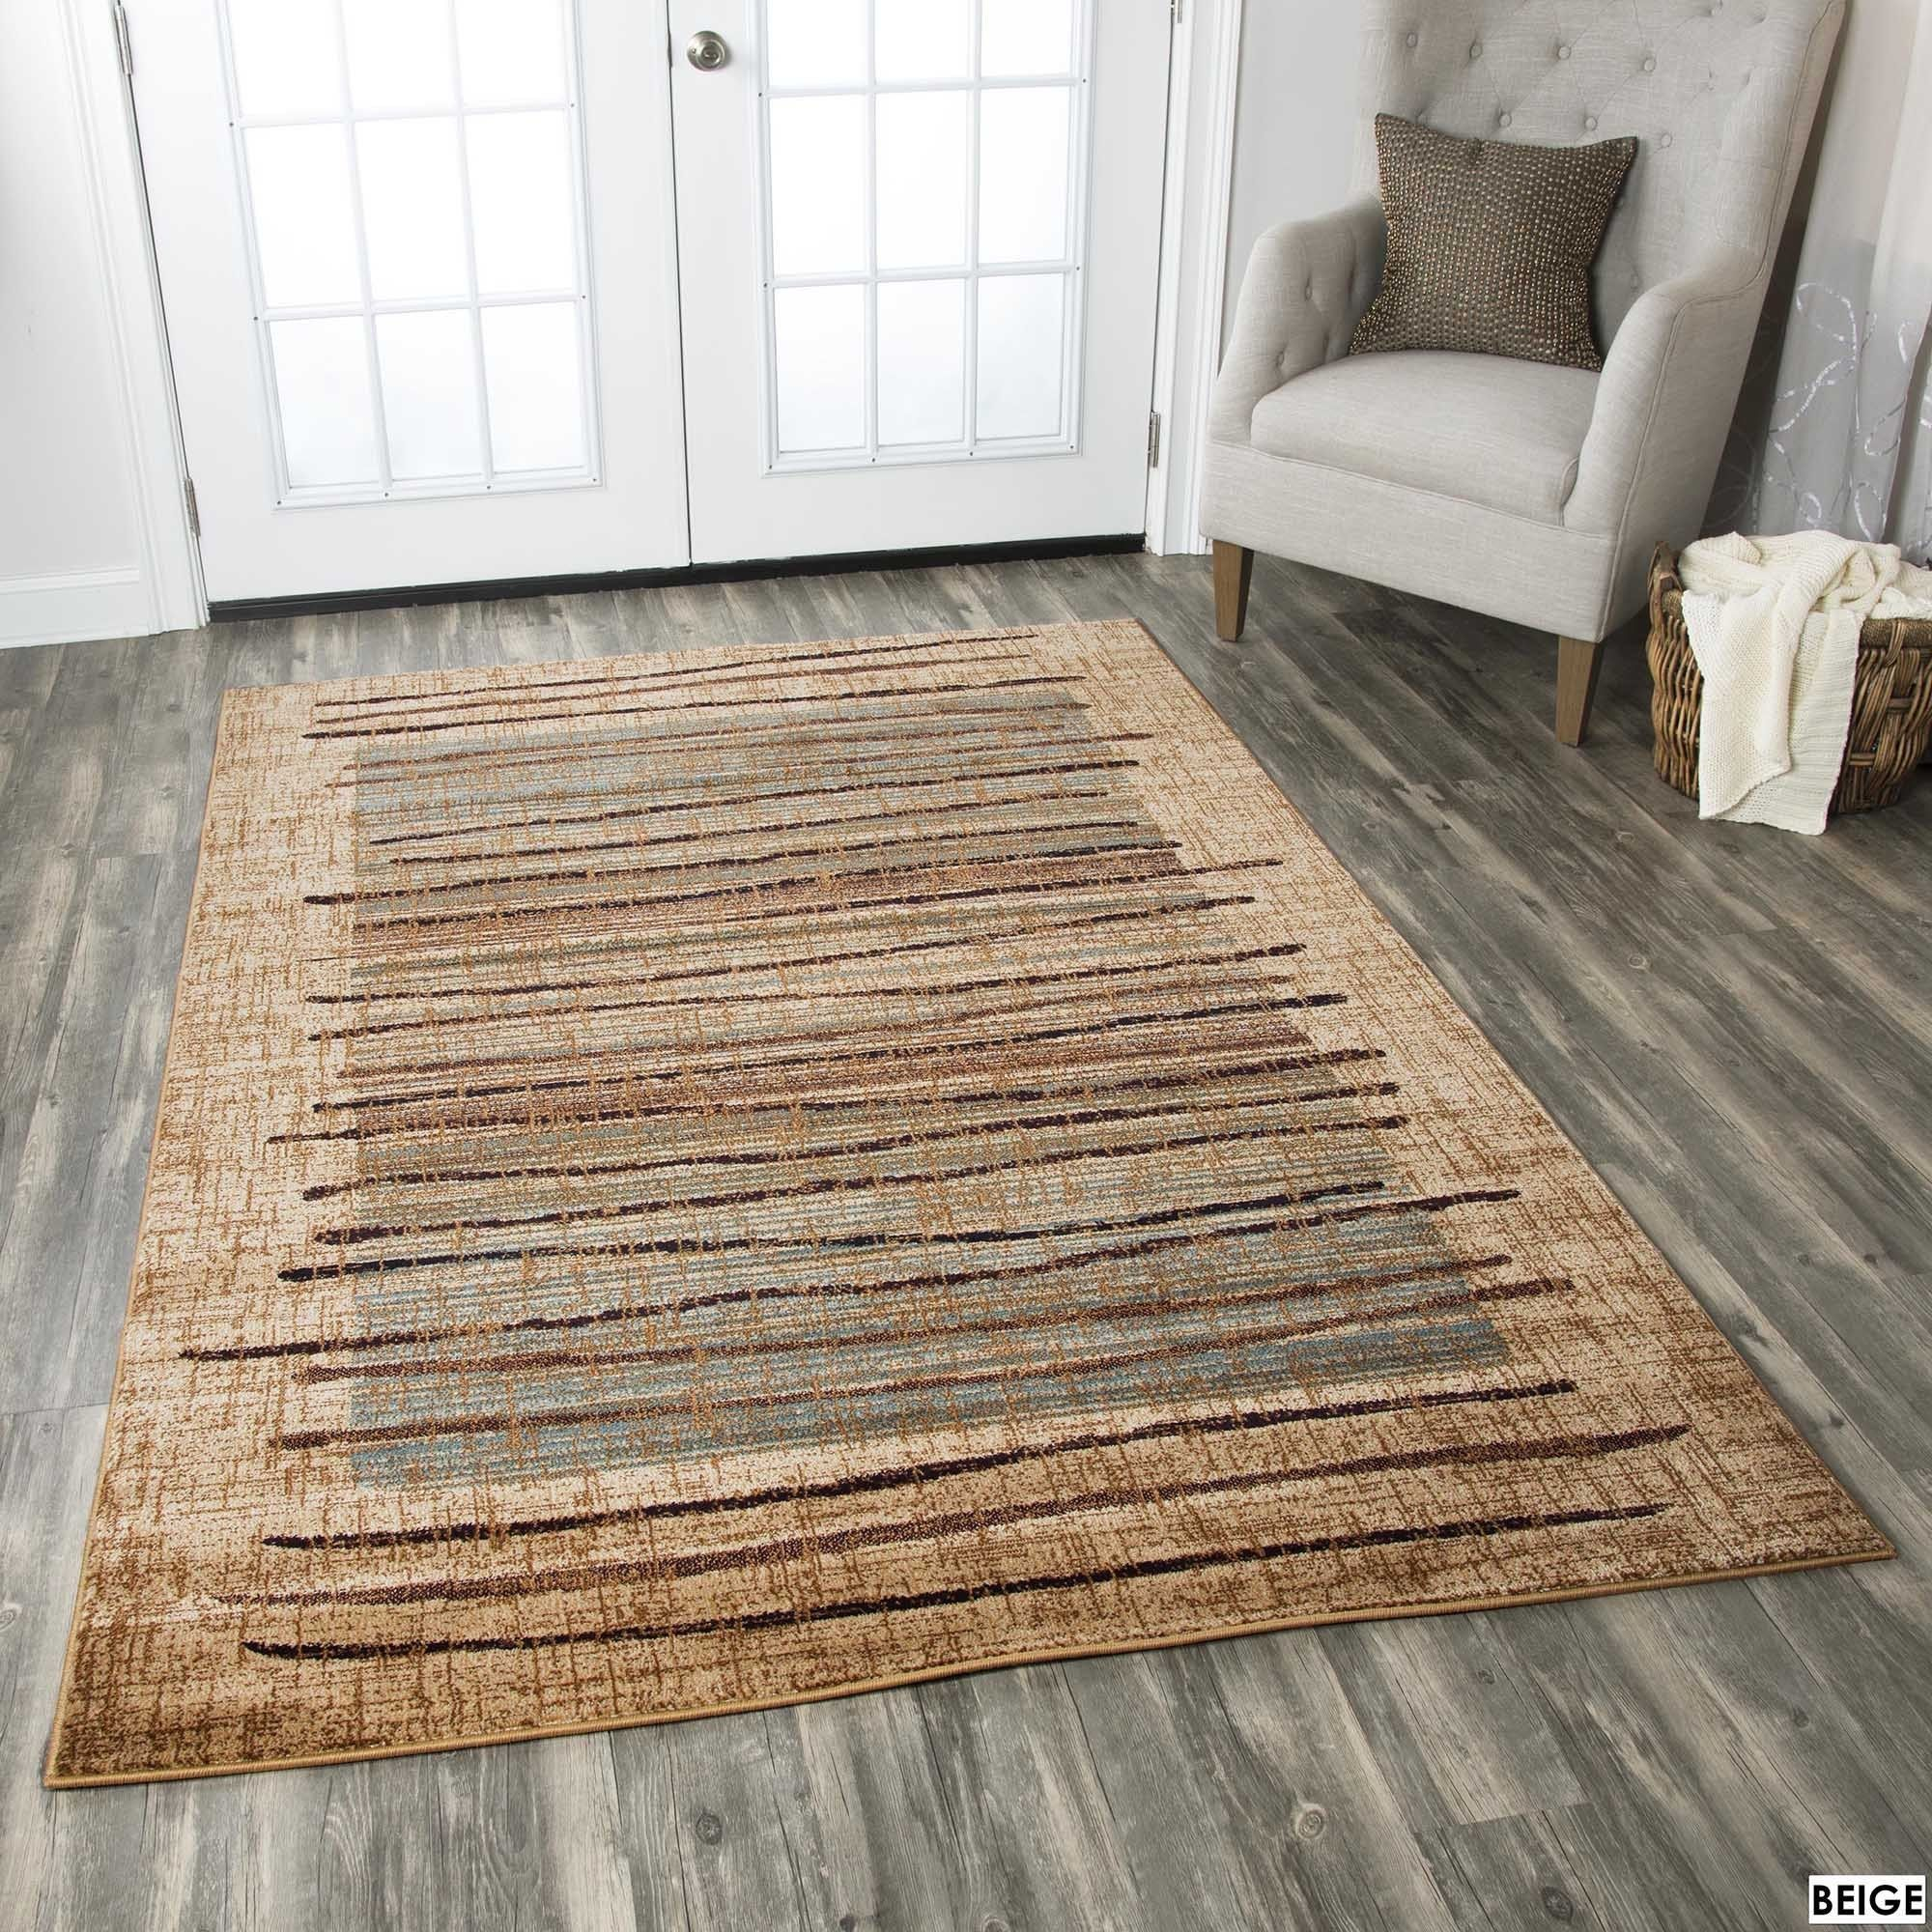 Rizzy Home Stripe Beige Bellevue Collection Accent Rug 9 10 X 12 6 9 2 X 12 6 Beige Area Rugs Rugs Beige Area Rugs